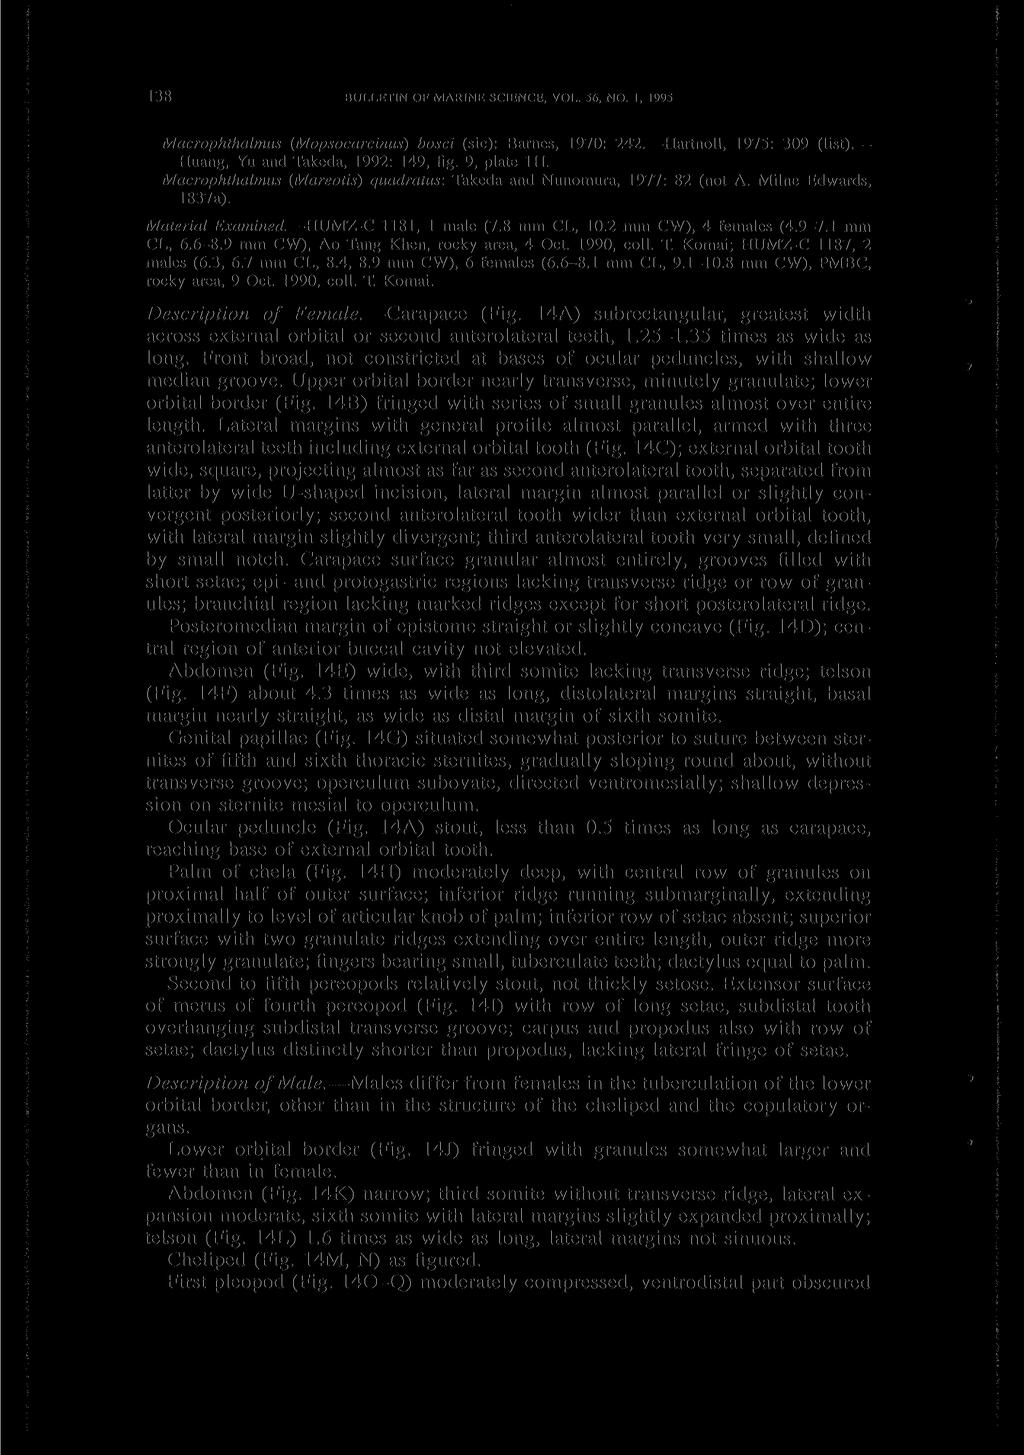 138 BULLETIN OF MARINE SCIENCE, VOL. 56, NO. 1, 1995 Macrophthalmus (Mopsocarcinus) bosci (sic): Barnes, 1970: 242. Hartnoll, 1975: 309 (list). Huang, Yu and Takeda, 1992: 149, fig. 9, plate 1H.